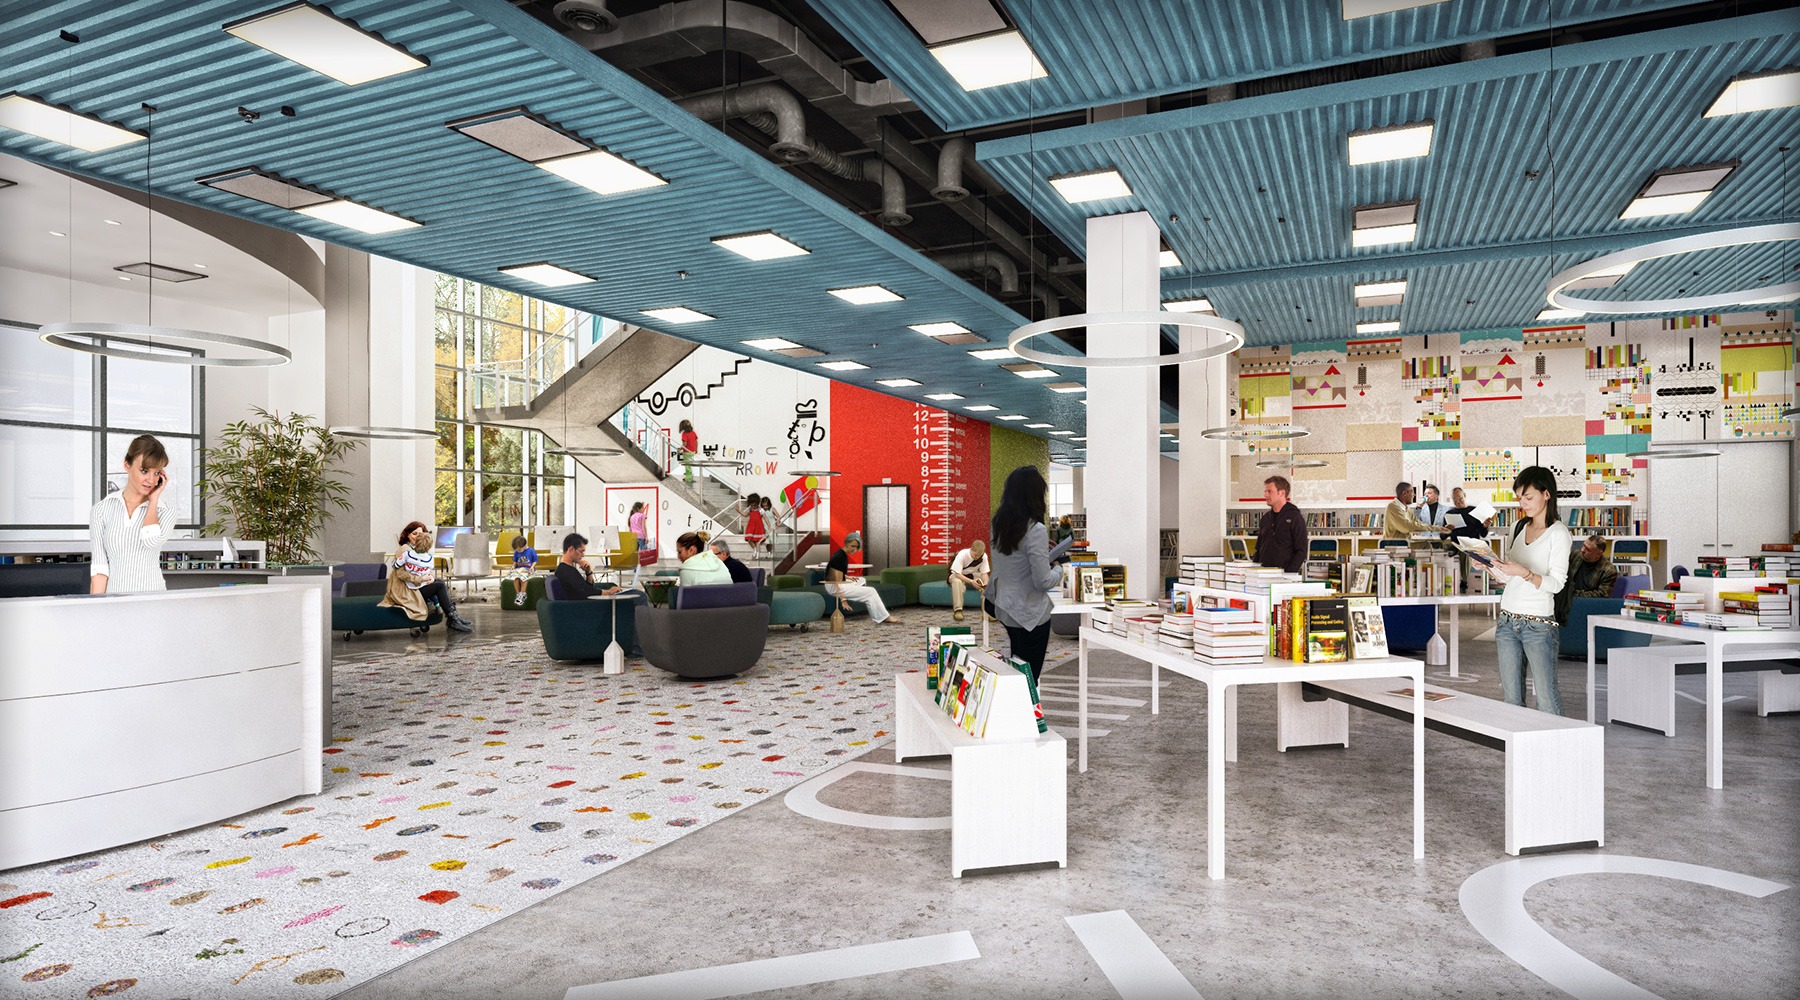 How To Design Spaces For People With >> Designing For Community 10 Essential Library Spaces